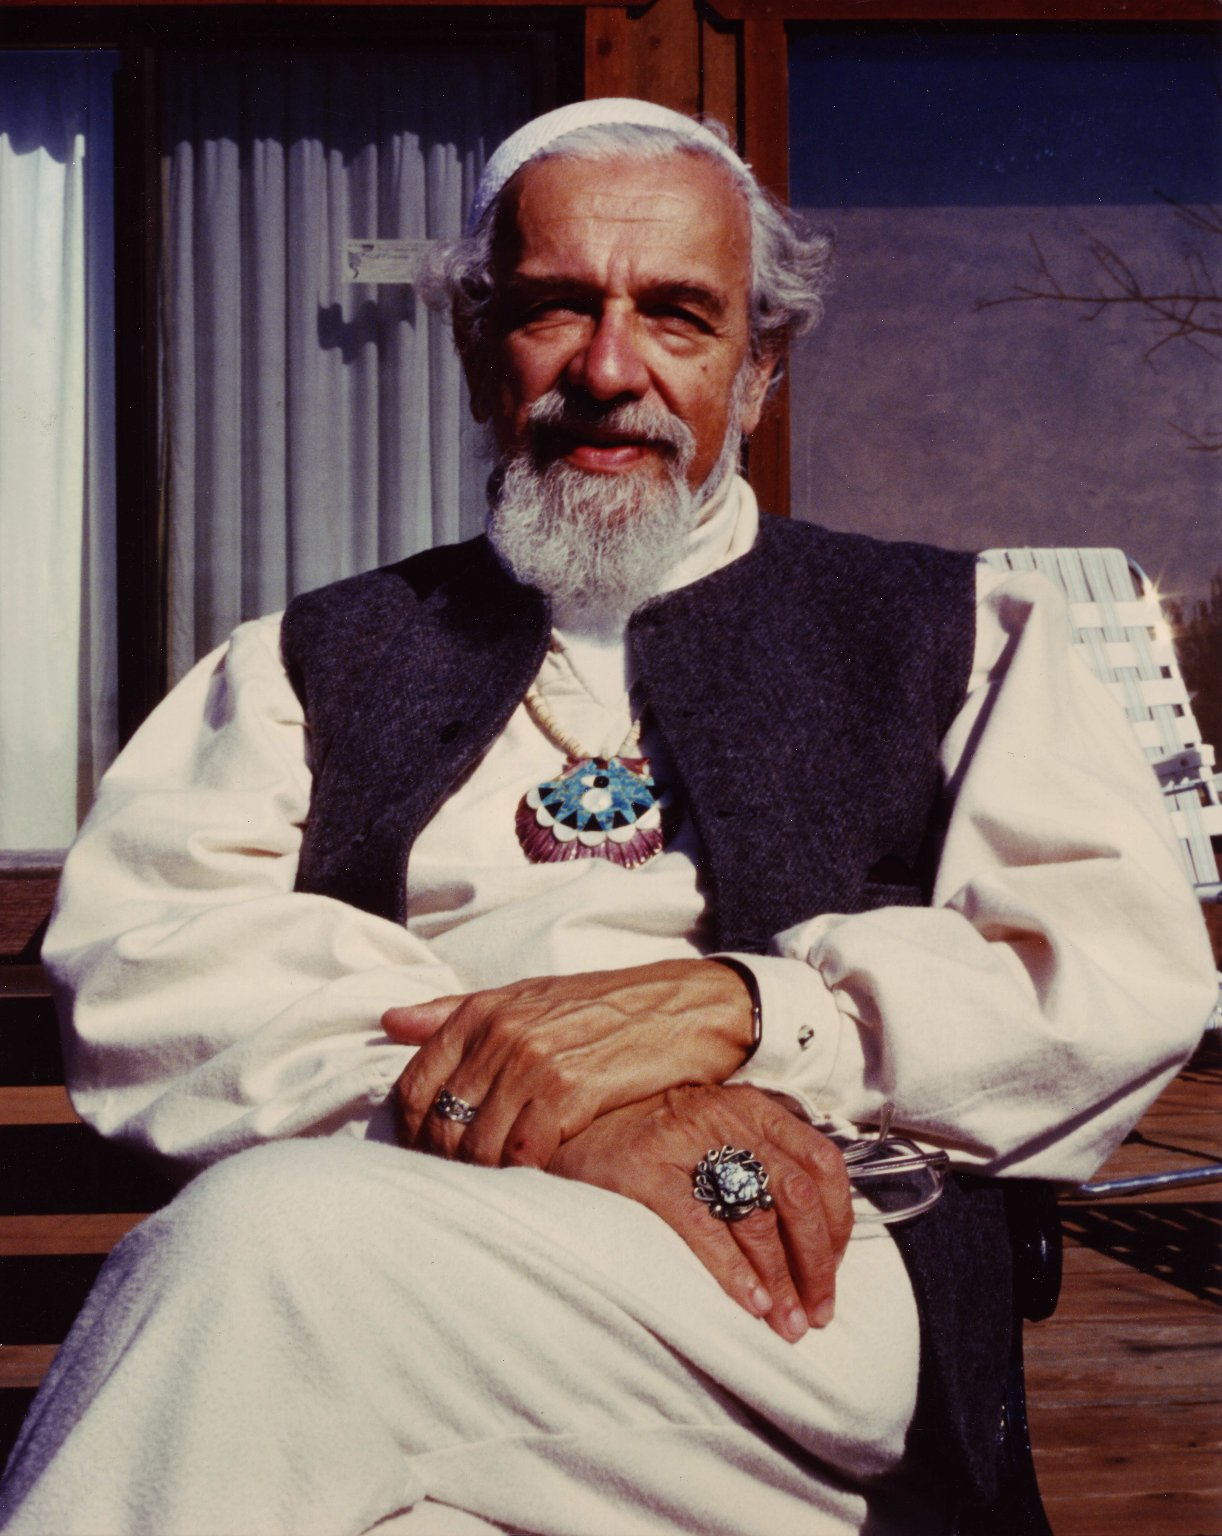 Close-up of Rabbi Zalman Schachter-Shalomi seated on a bench at the Mount Madonna Center with his hands in his lap, ca. 1999.